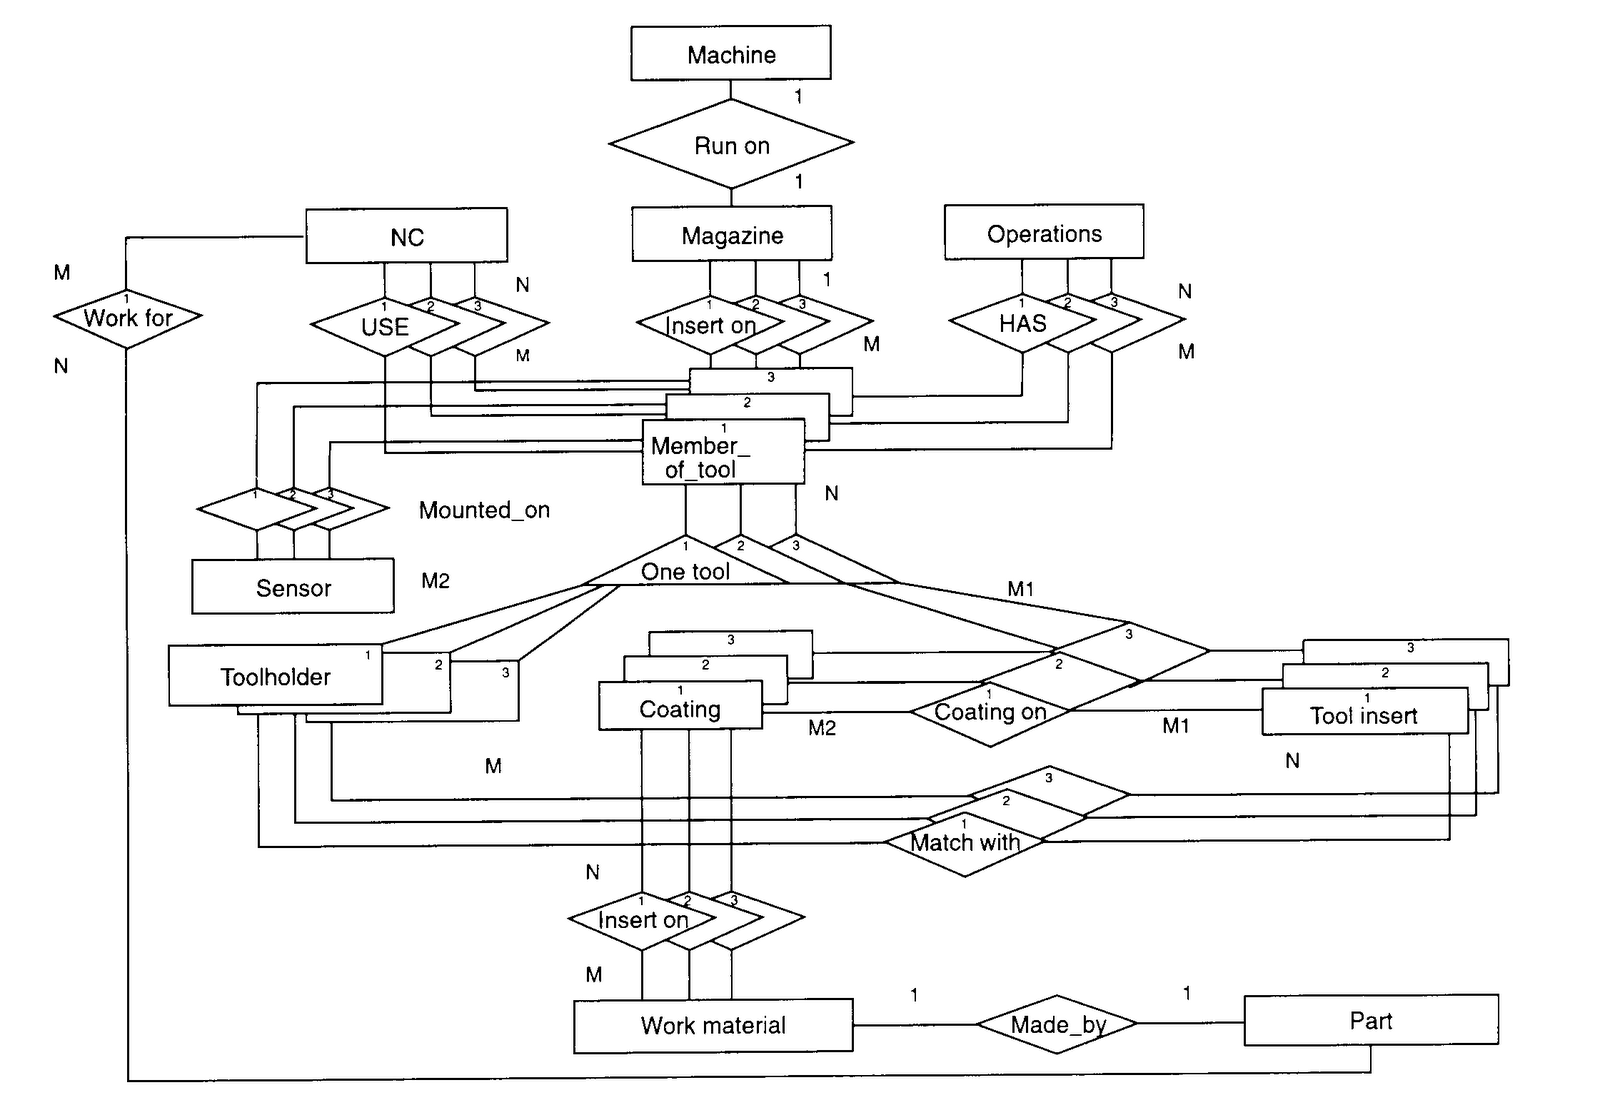 NEW DATA FLOW DIAGRAM FOR INVENTORY MANAGEMENT SYSTEM